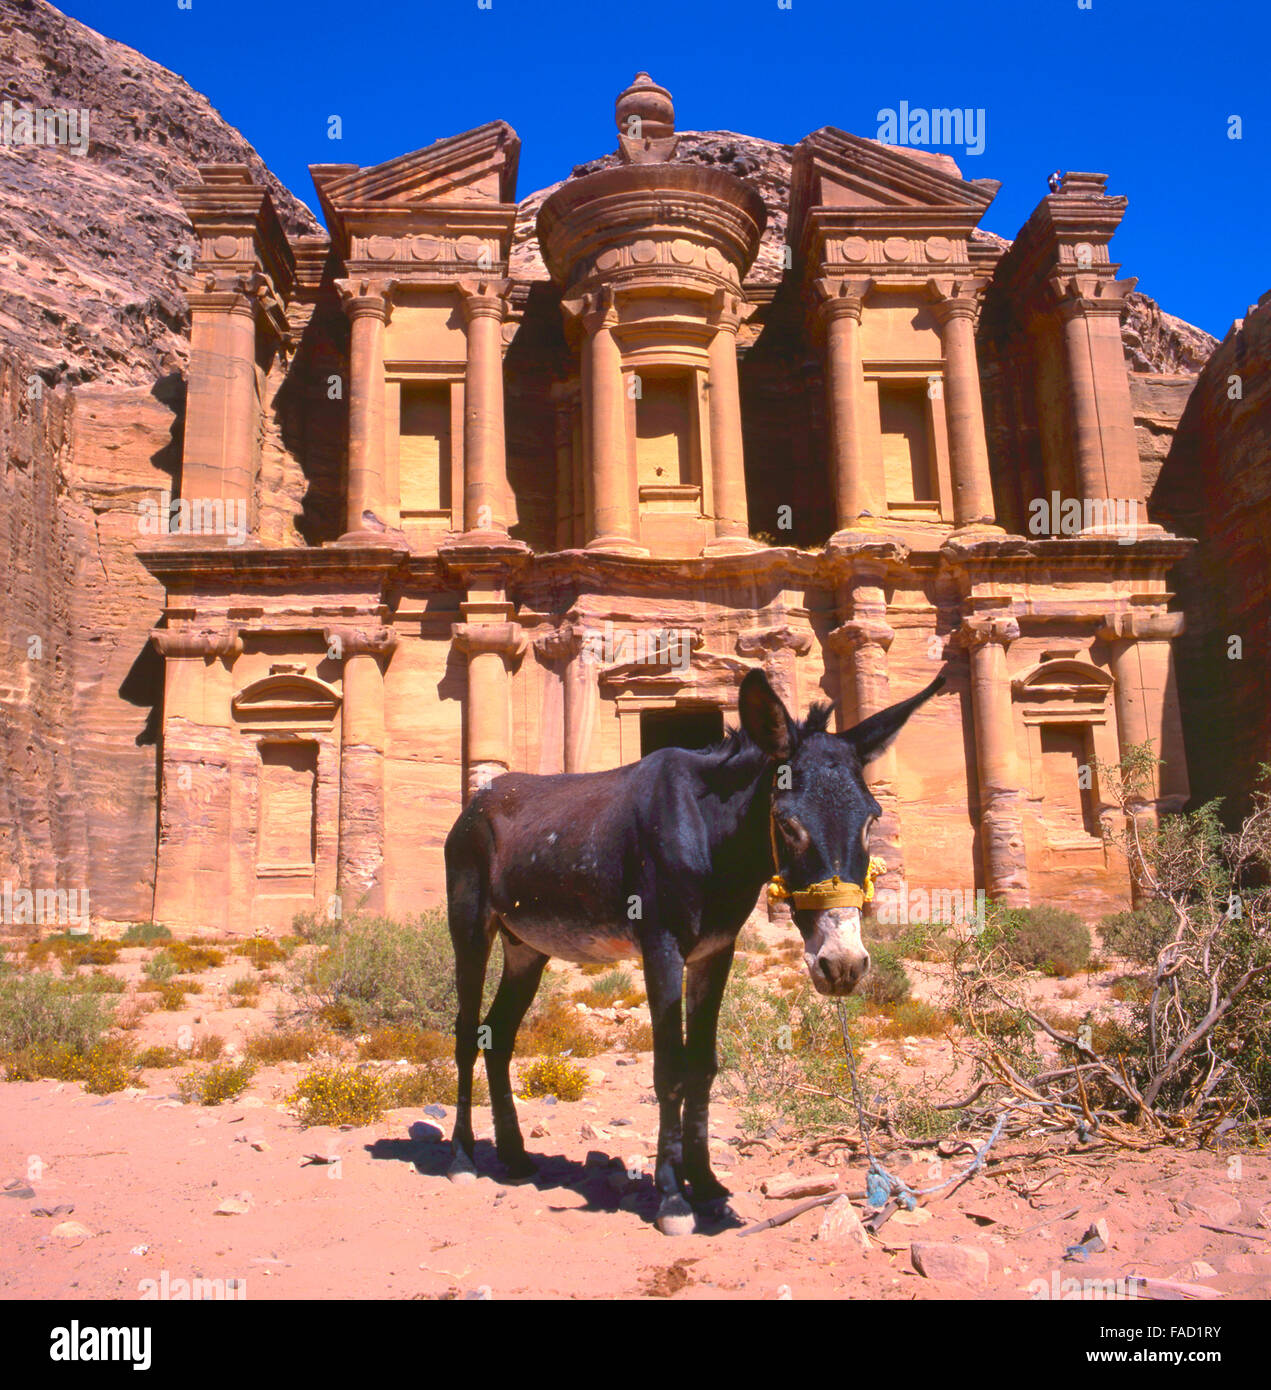 The Ed-Deir grave in Petra.The old city of Petra is an UNESCO World Heritage site - Stock Image